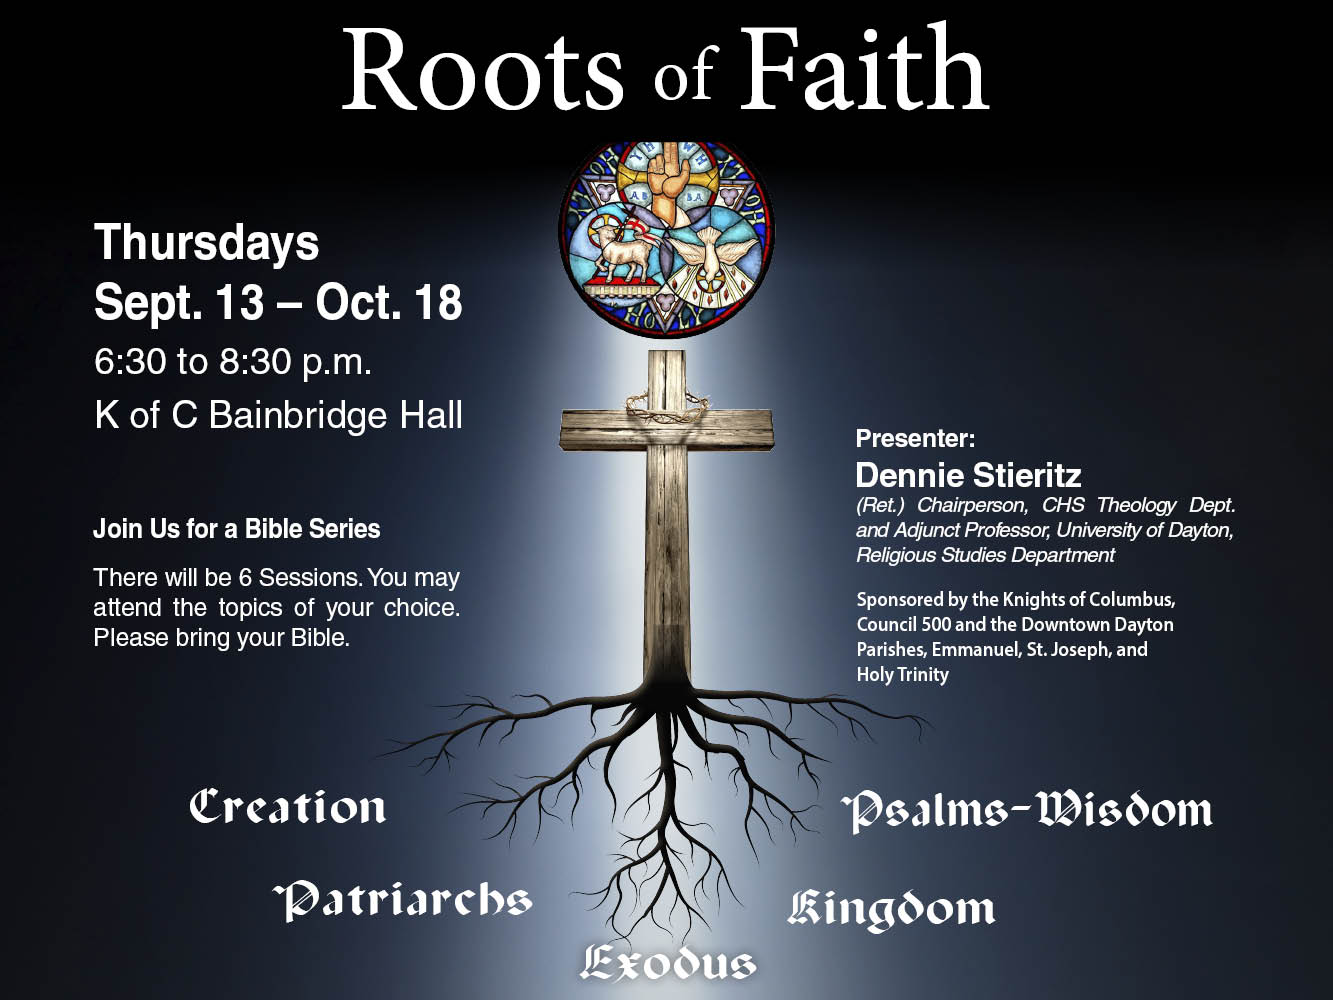 Roots of Faith 2018